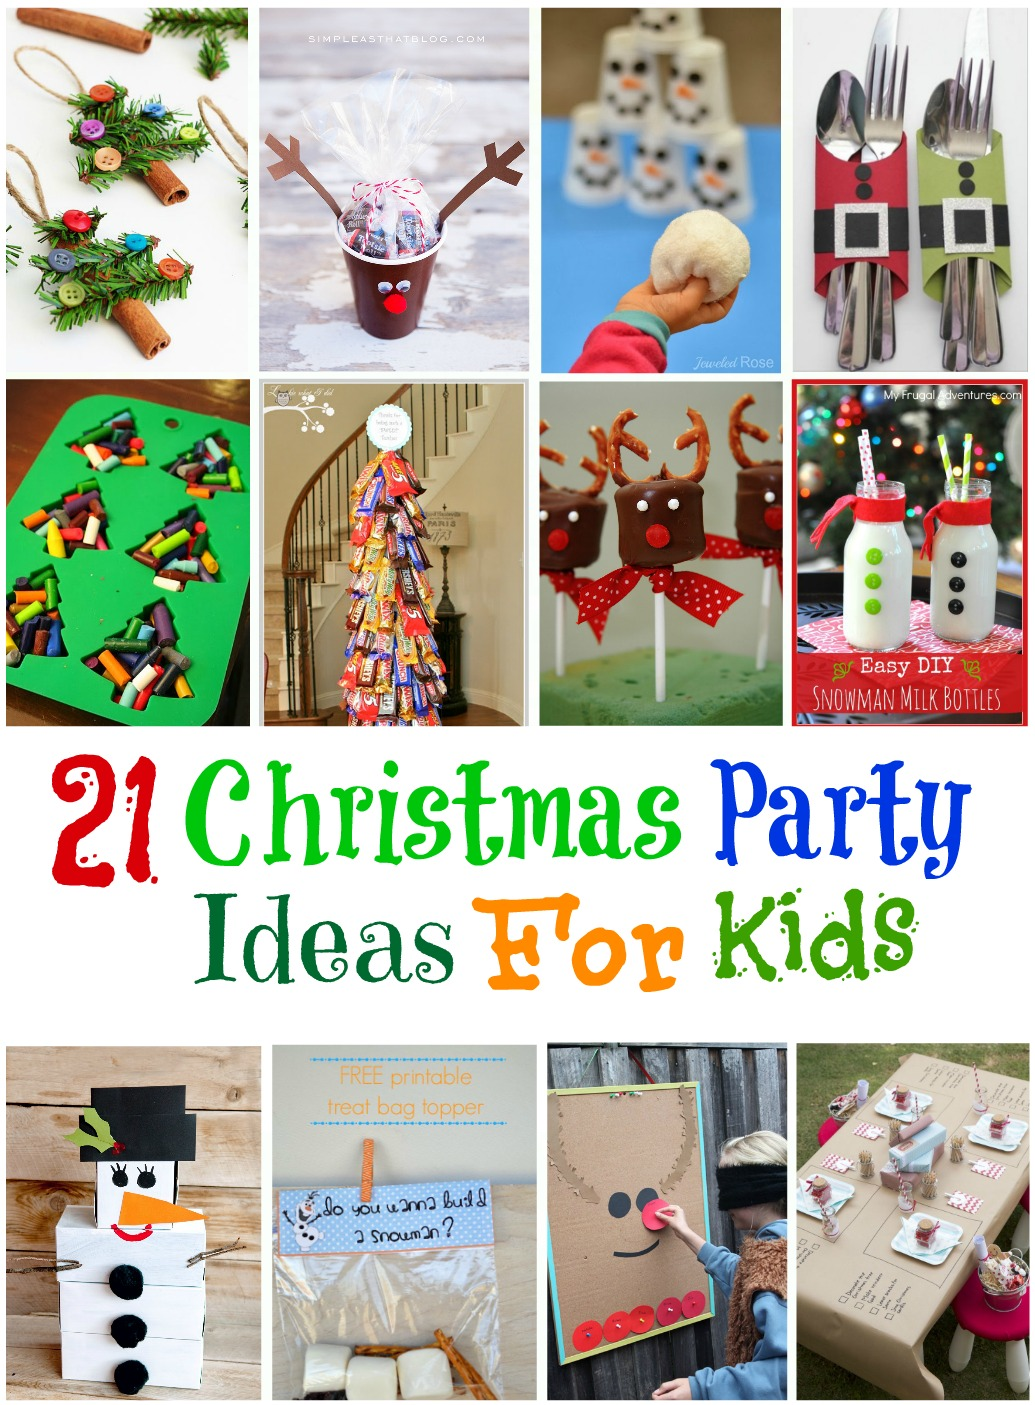 ideas for kids christmas party